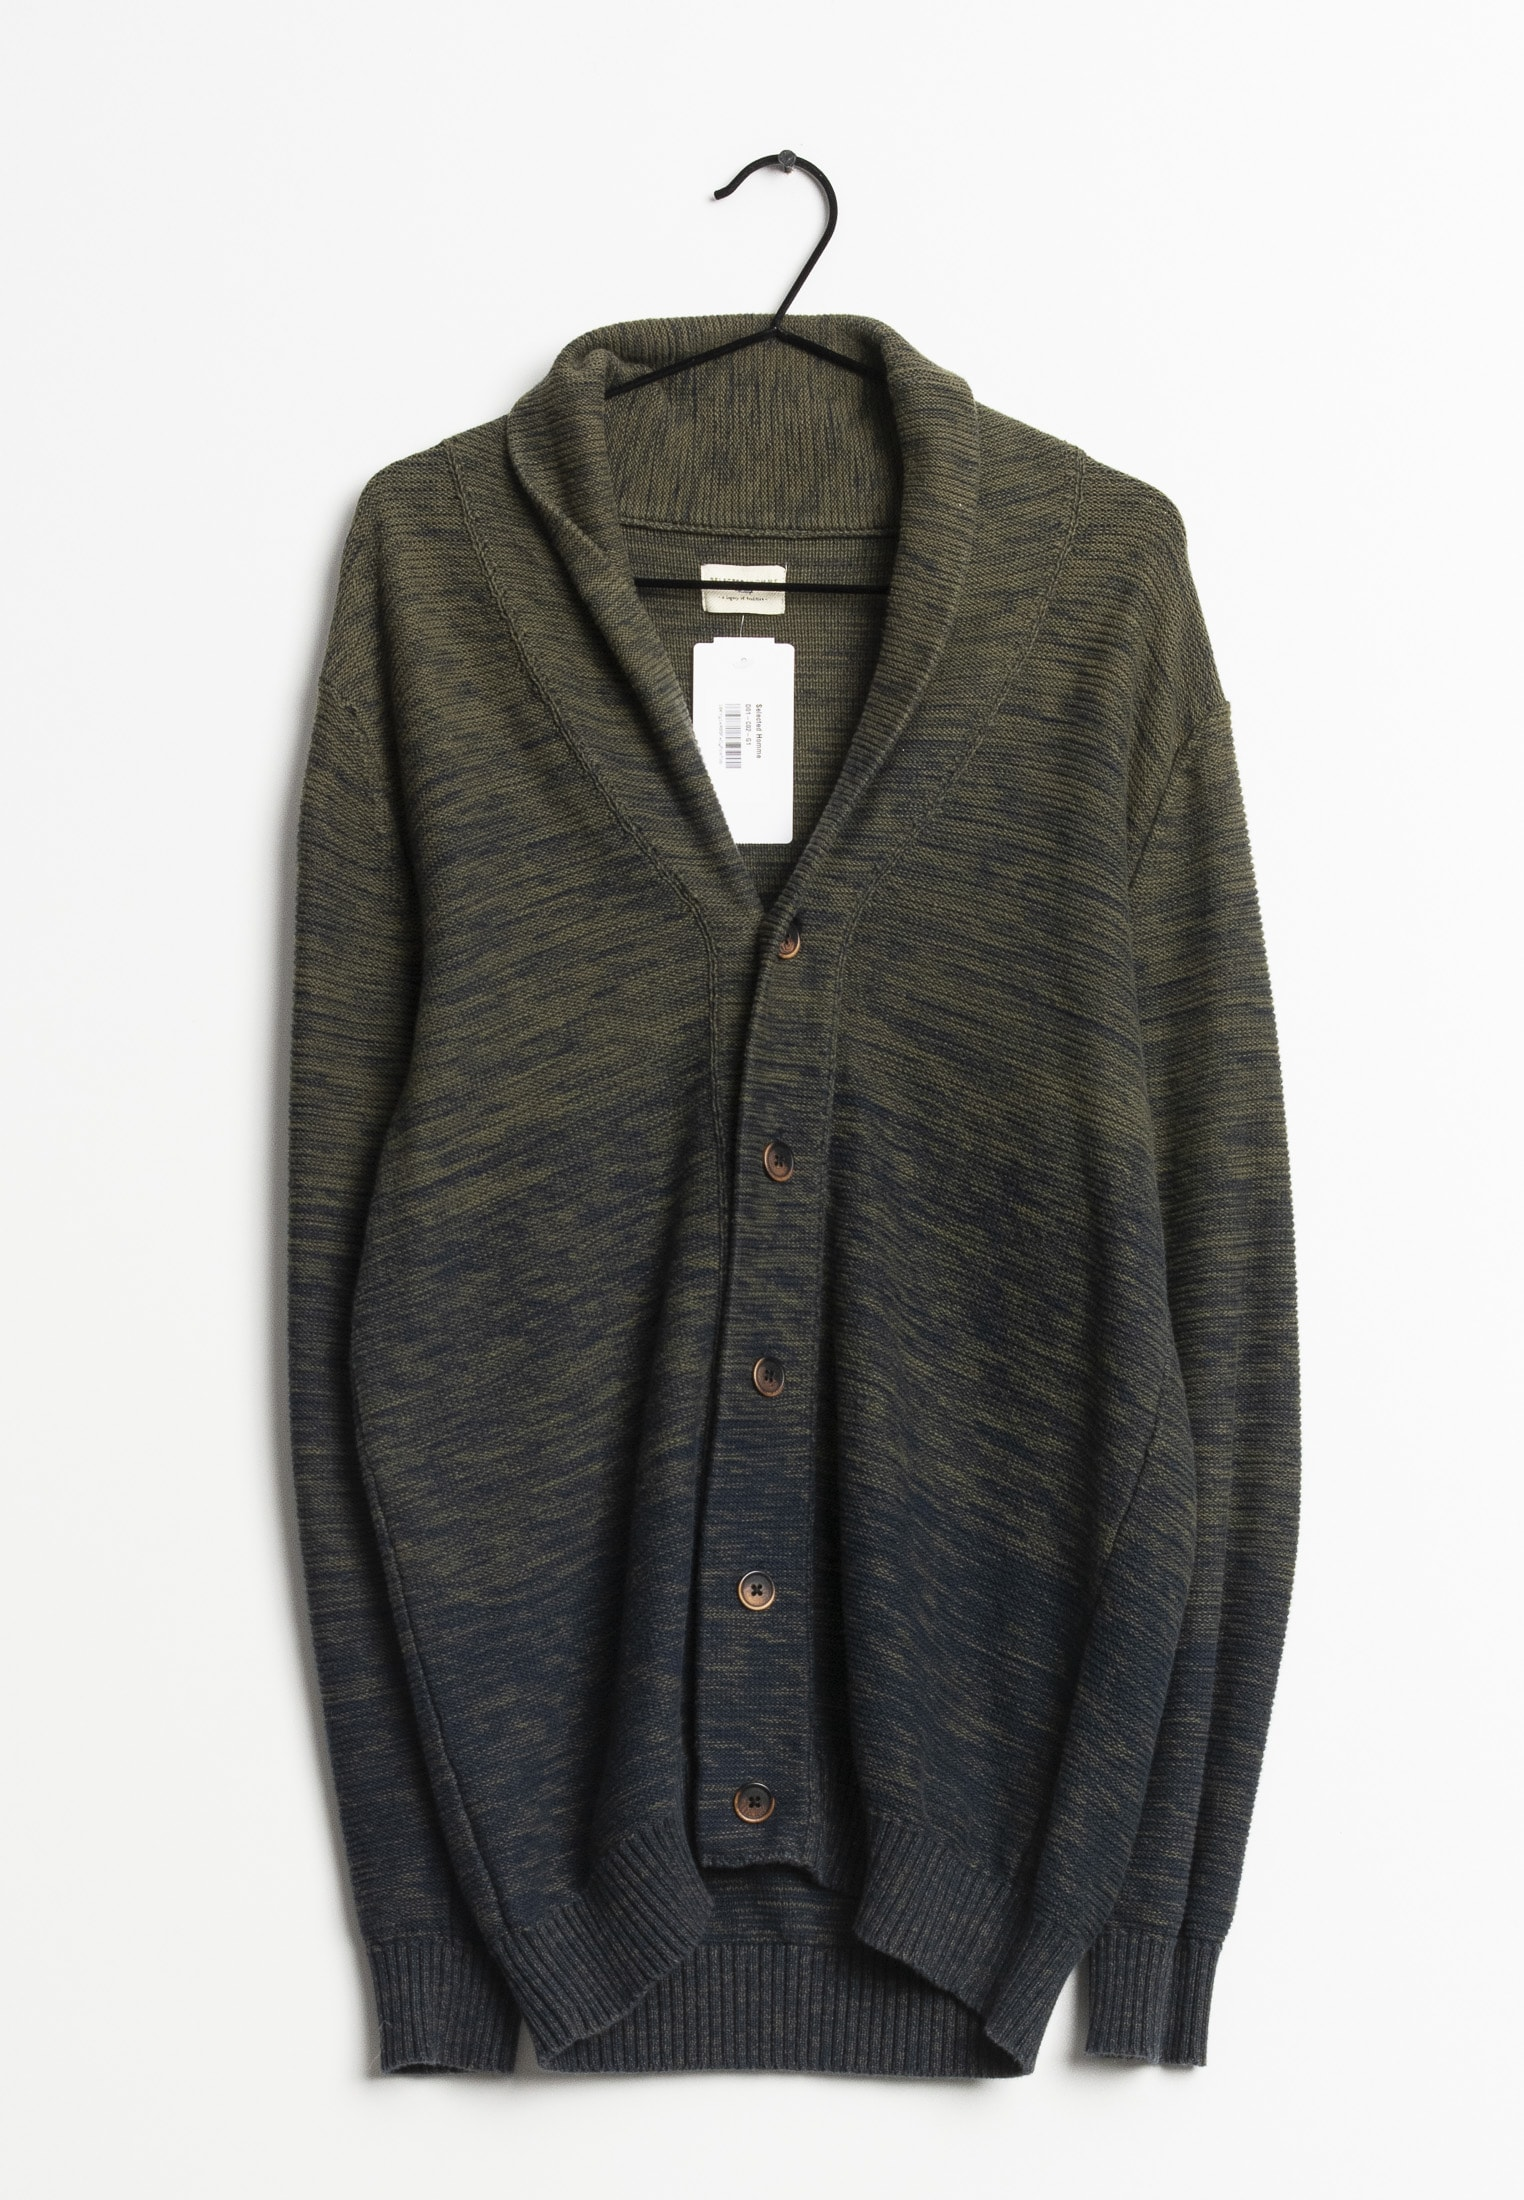 Selected Homme cardigan, grøn, L